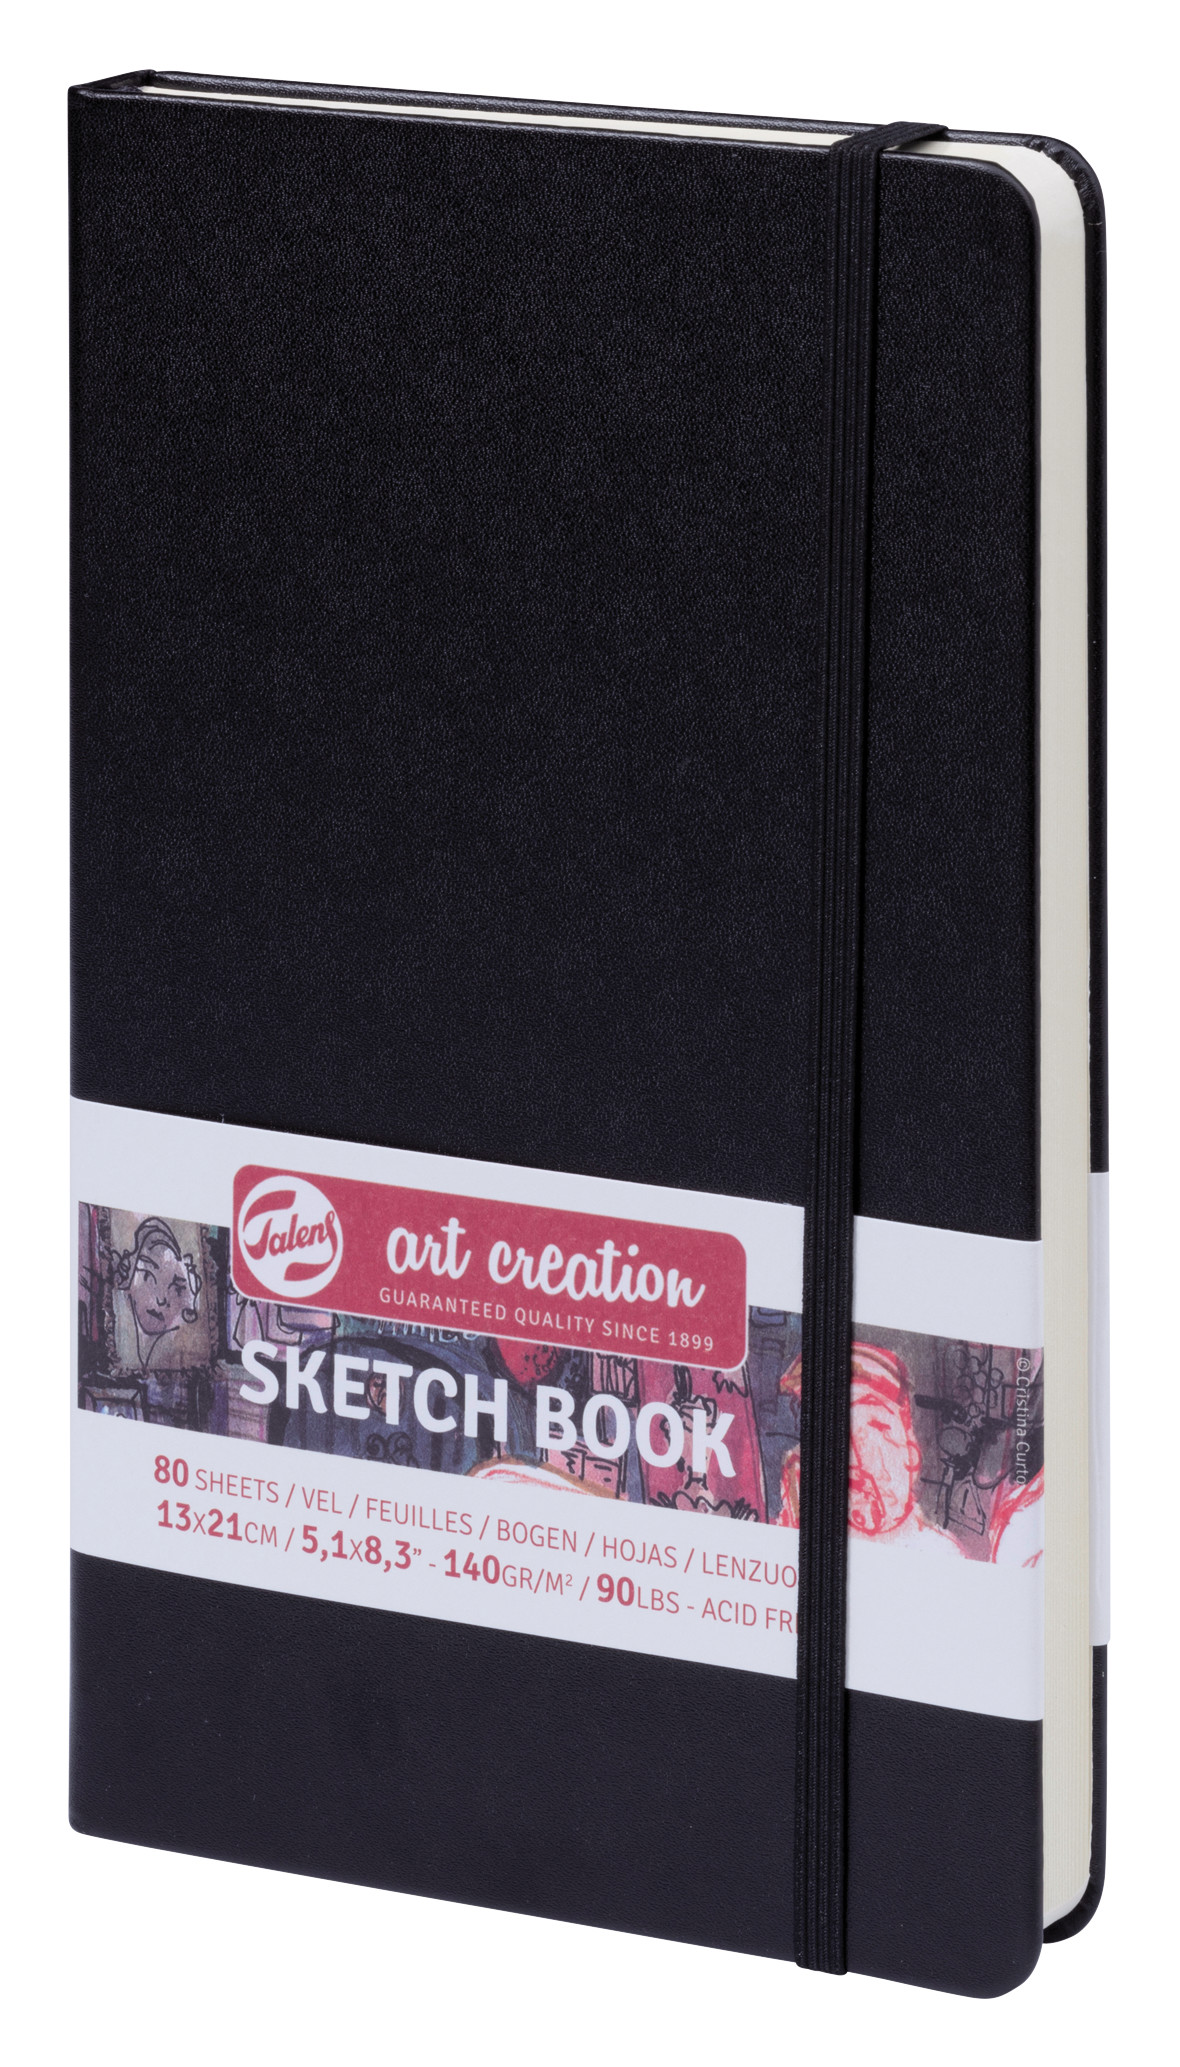 Talens Art Creation Sketchbook Black 13X21 cm, 140 Grams